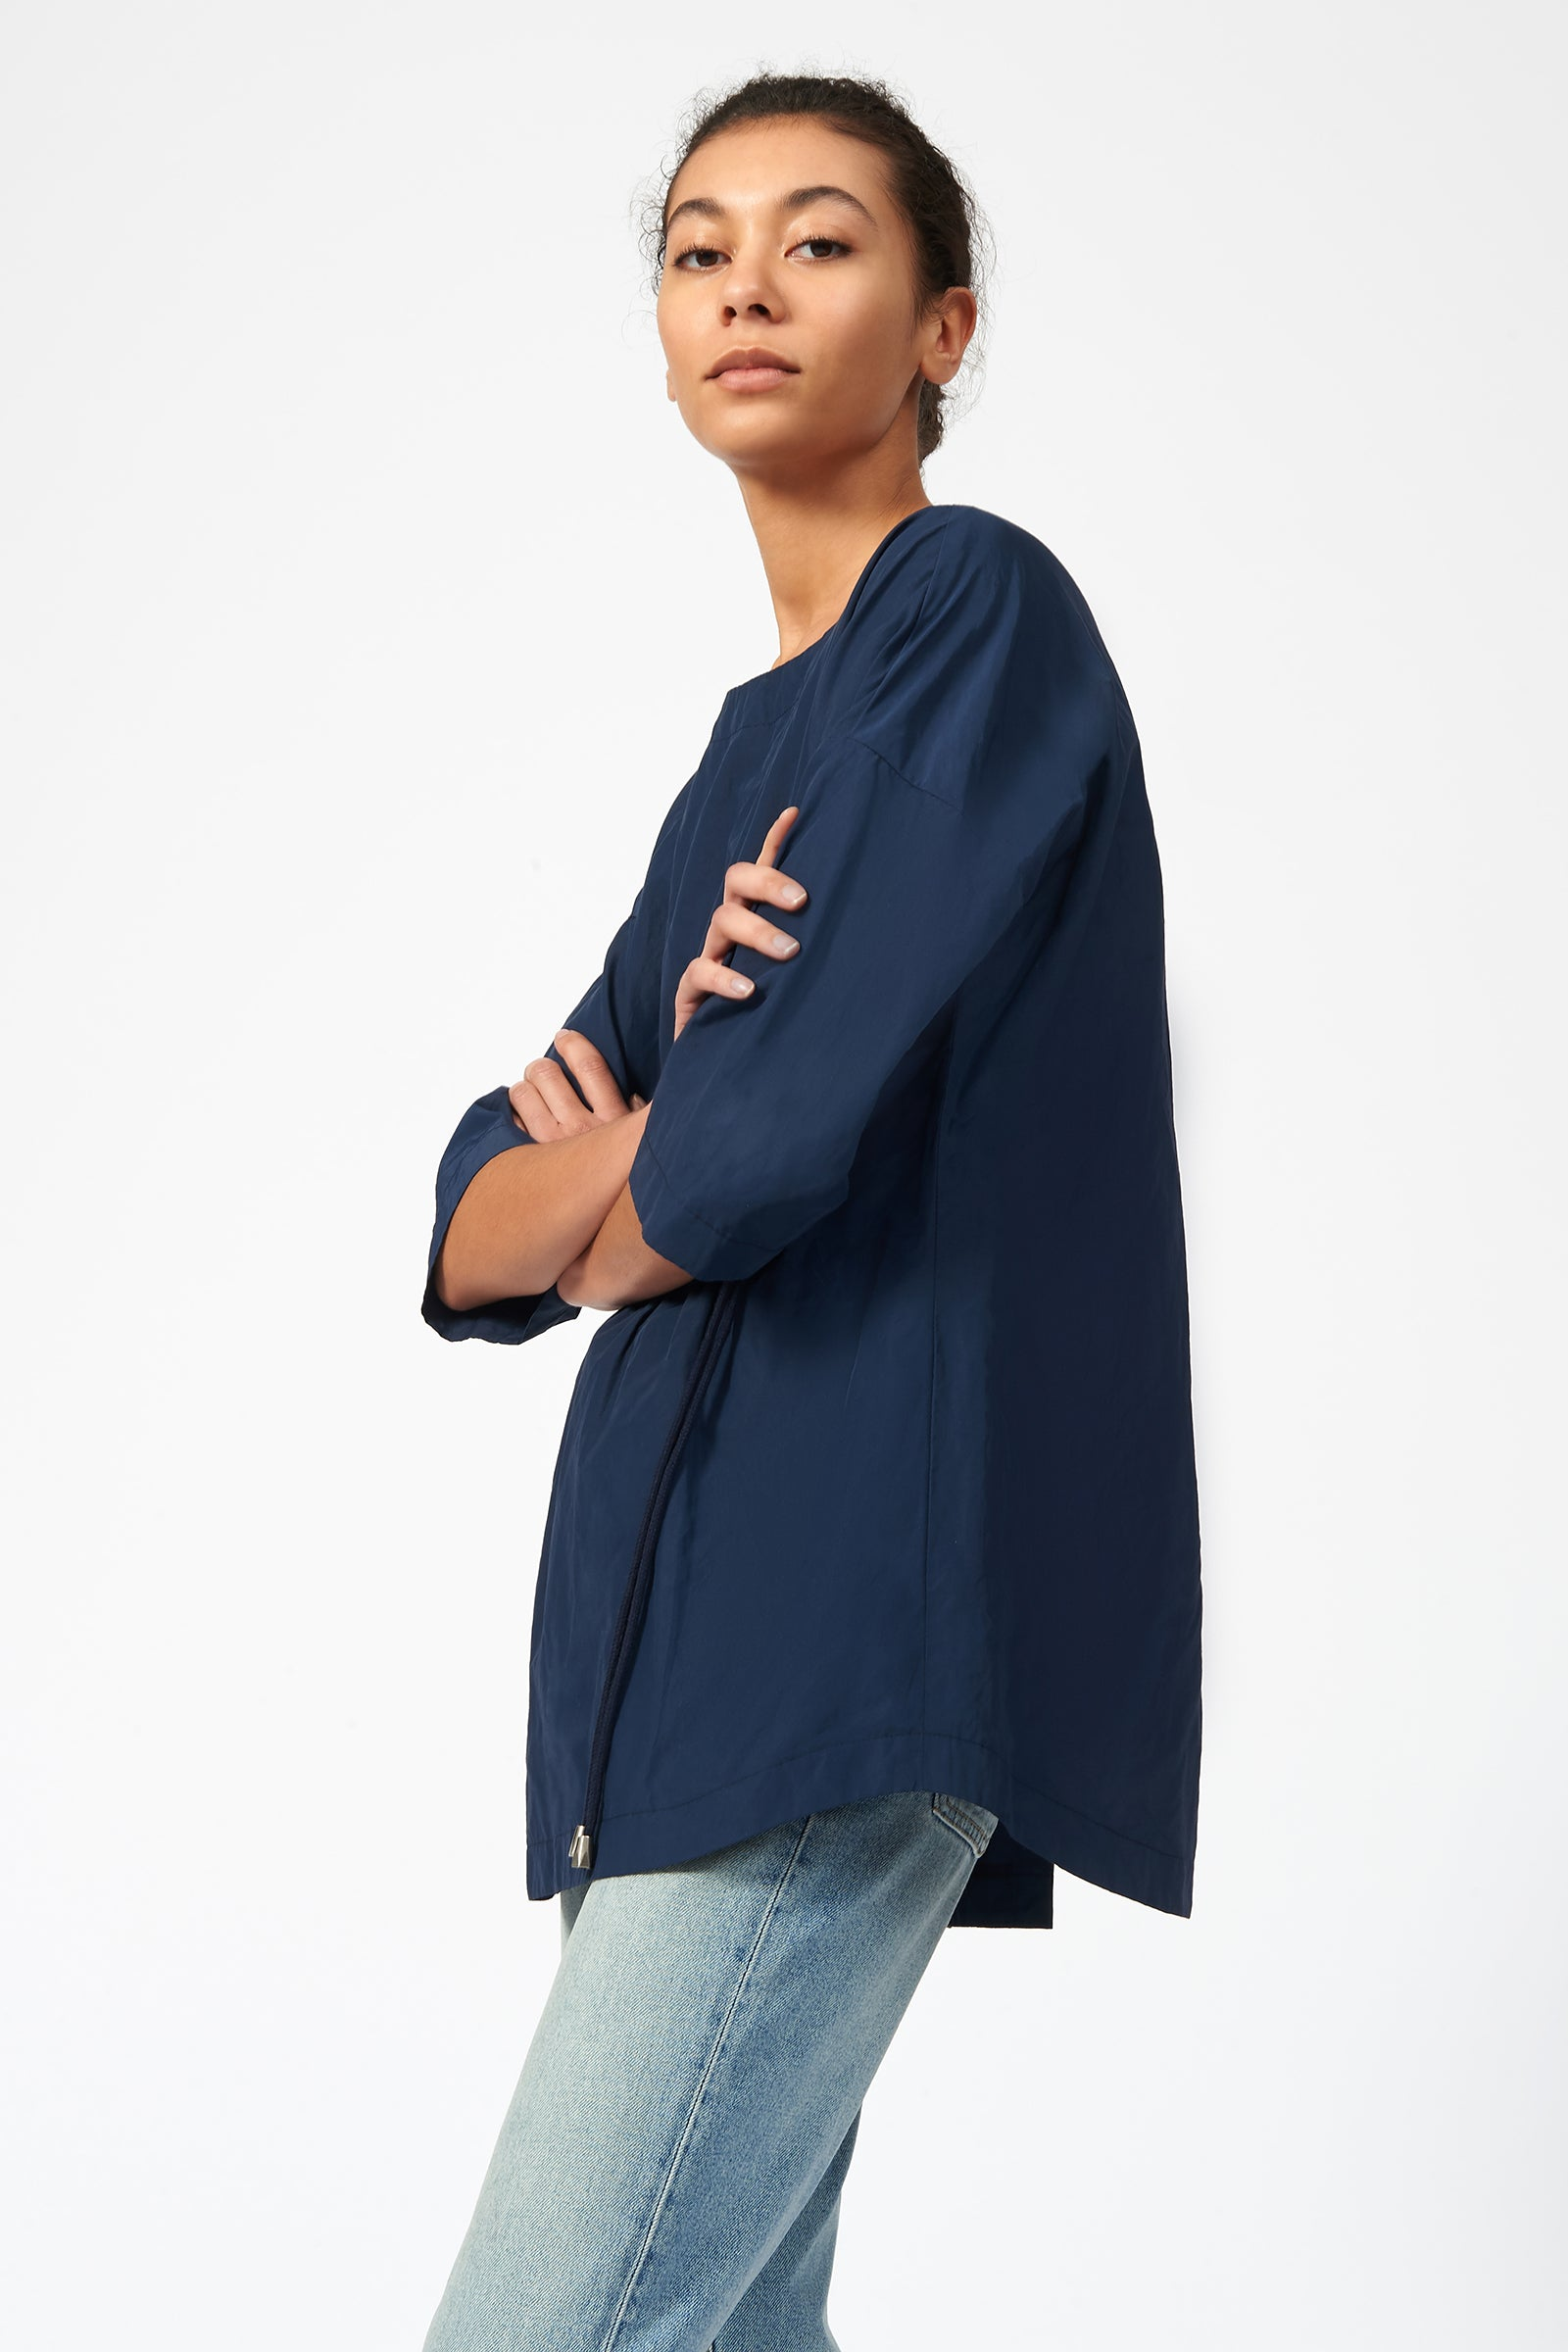 Kal Rieman Cinch Front Pullover in Navy on Model Side View